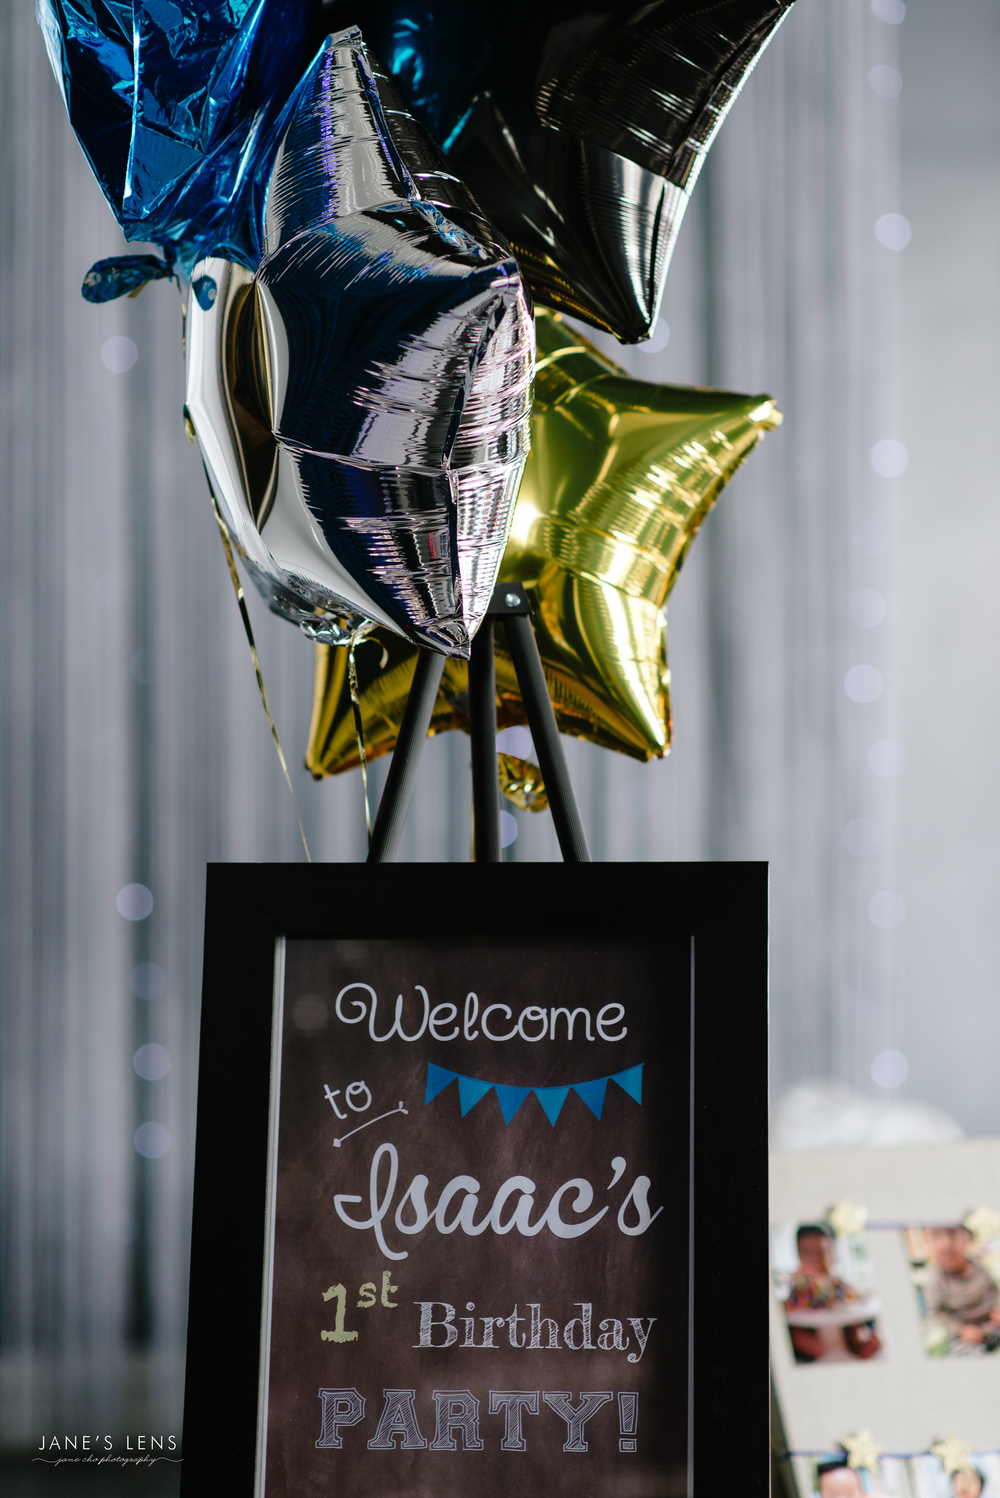 Twinkle Twinkle Little Star Dohl Dohlsang Welcome Chalkboard Sign Balloons doljanchi.jpg